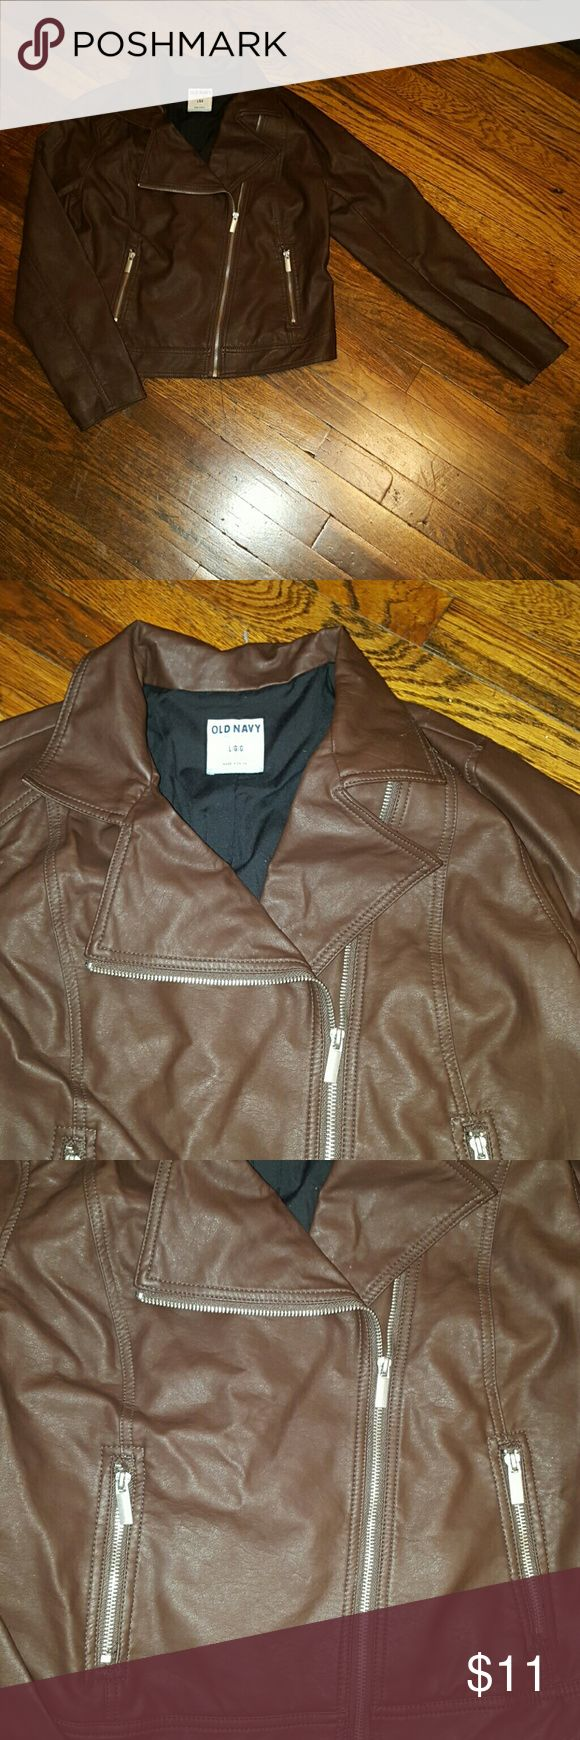 Old Navy leather jacket Used Old Navy brown size L leather jacket. In great condition! ! Old Navy Jackets & Coats